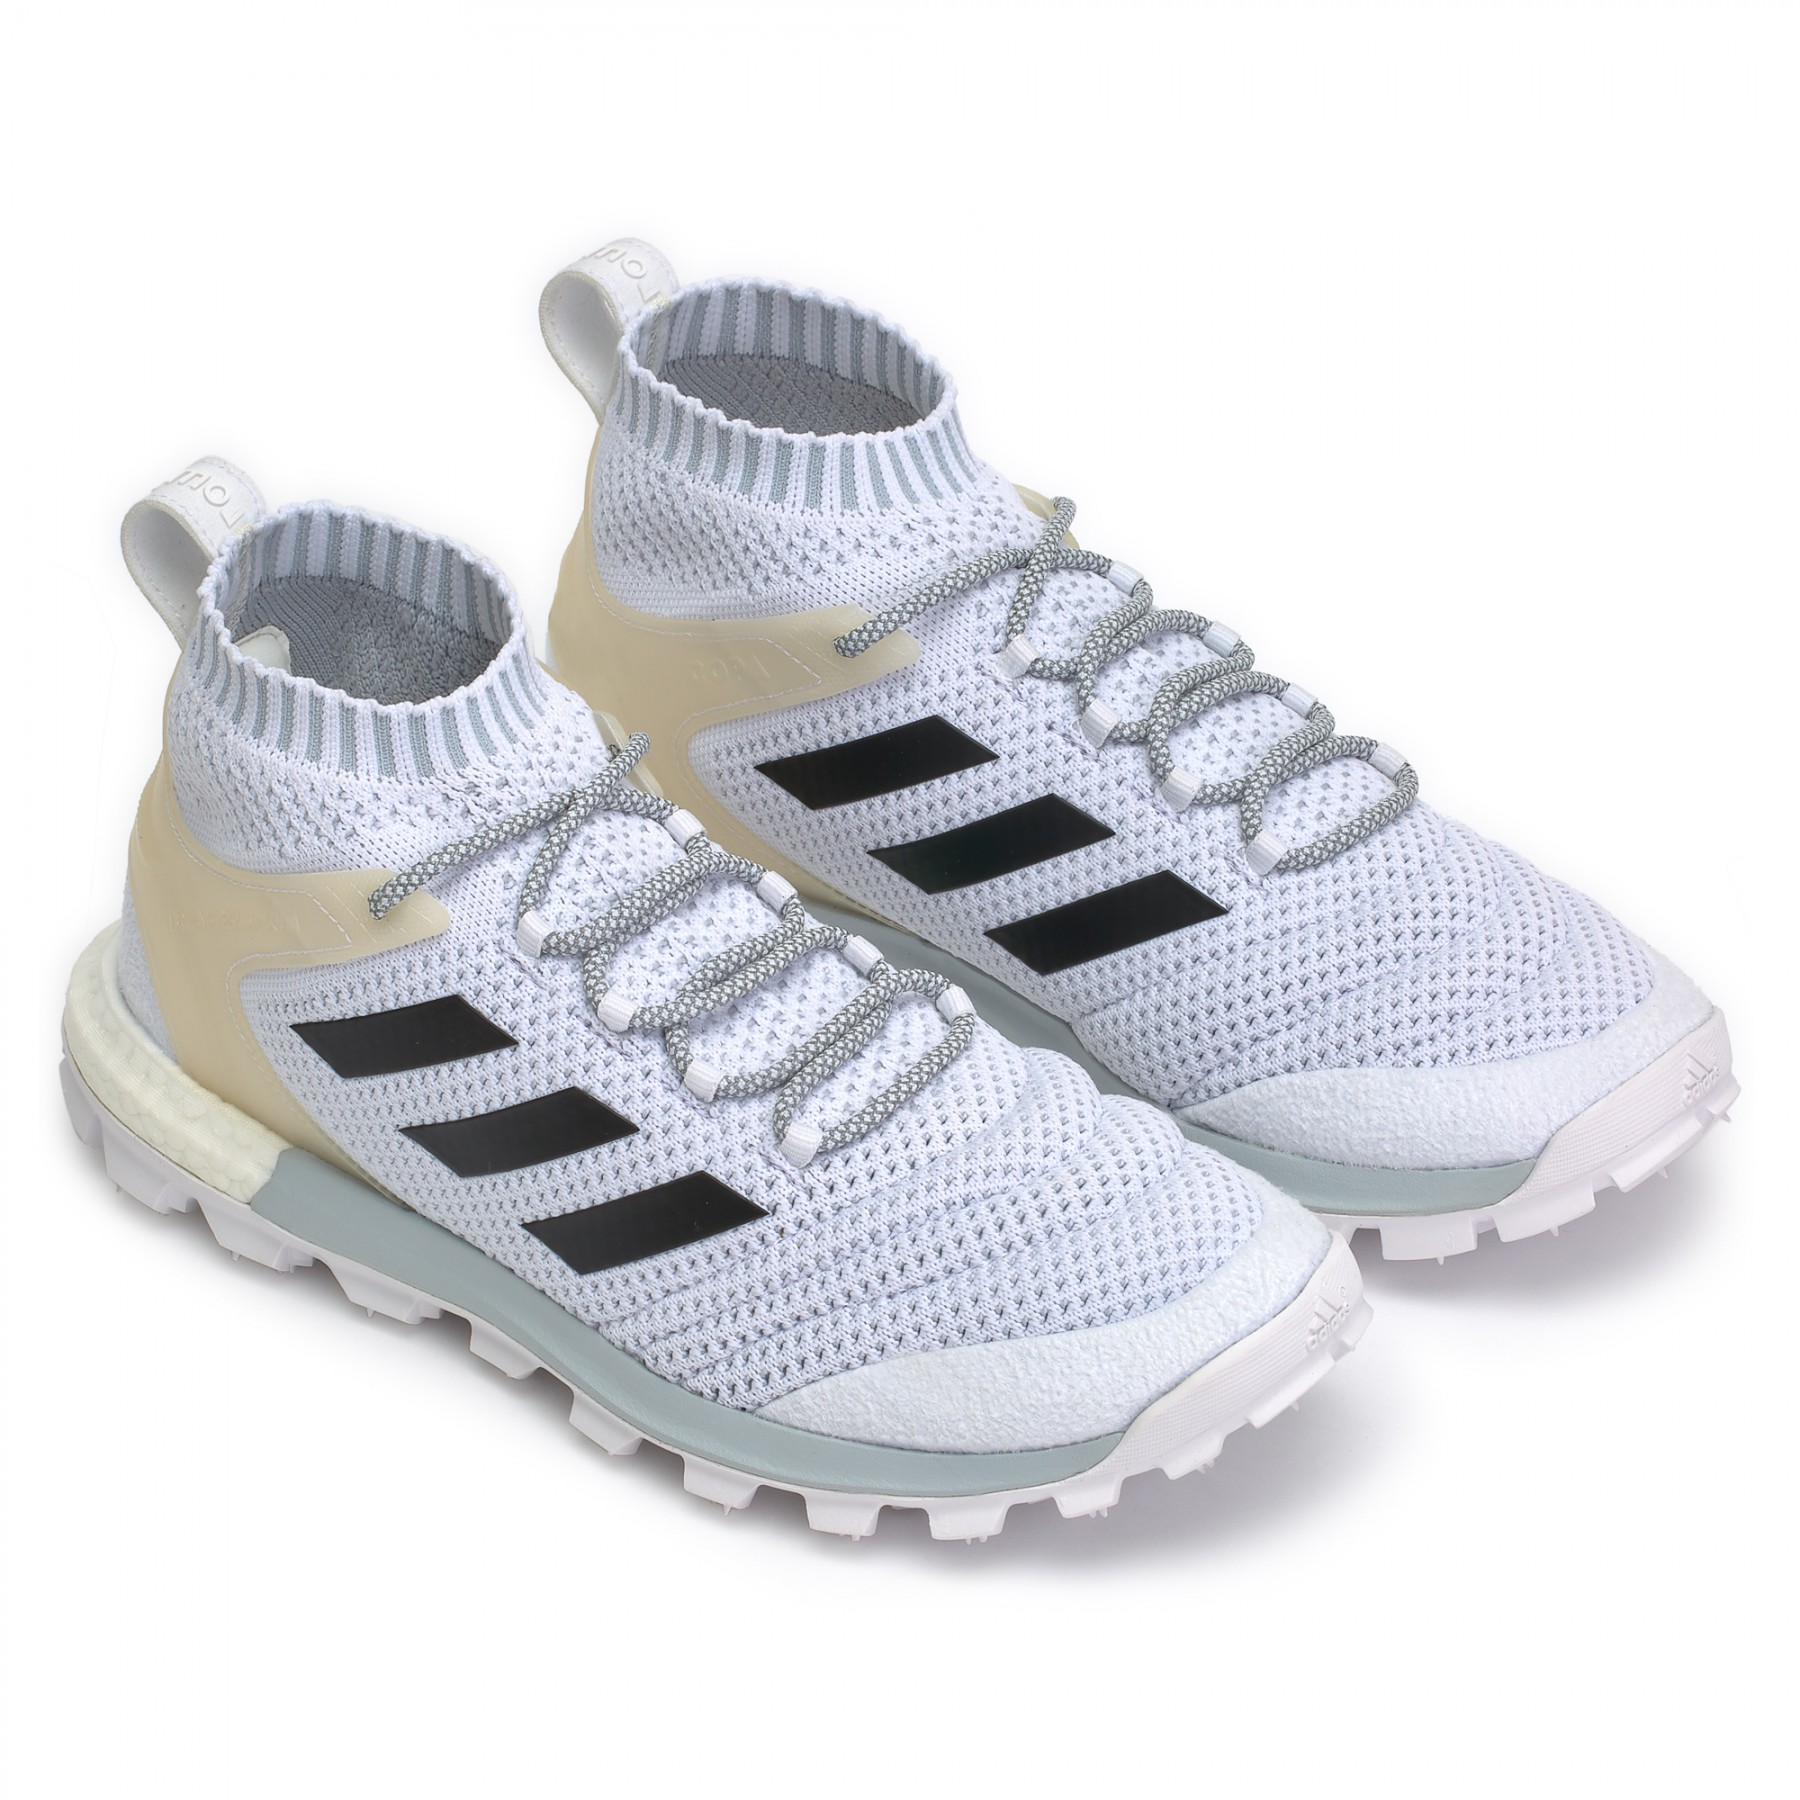 X Adidas Copa Primeknit sneakers Largest Supplier Sale Online Visit New Cheap Online 4VtGhuSO